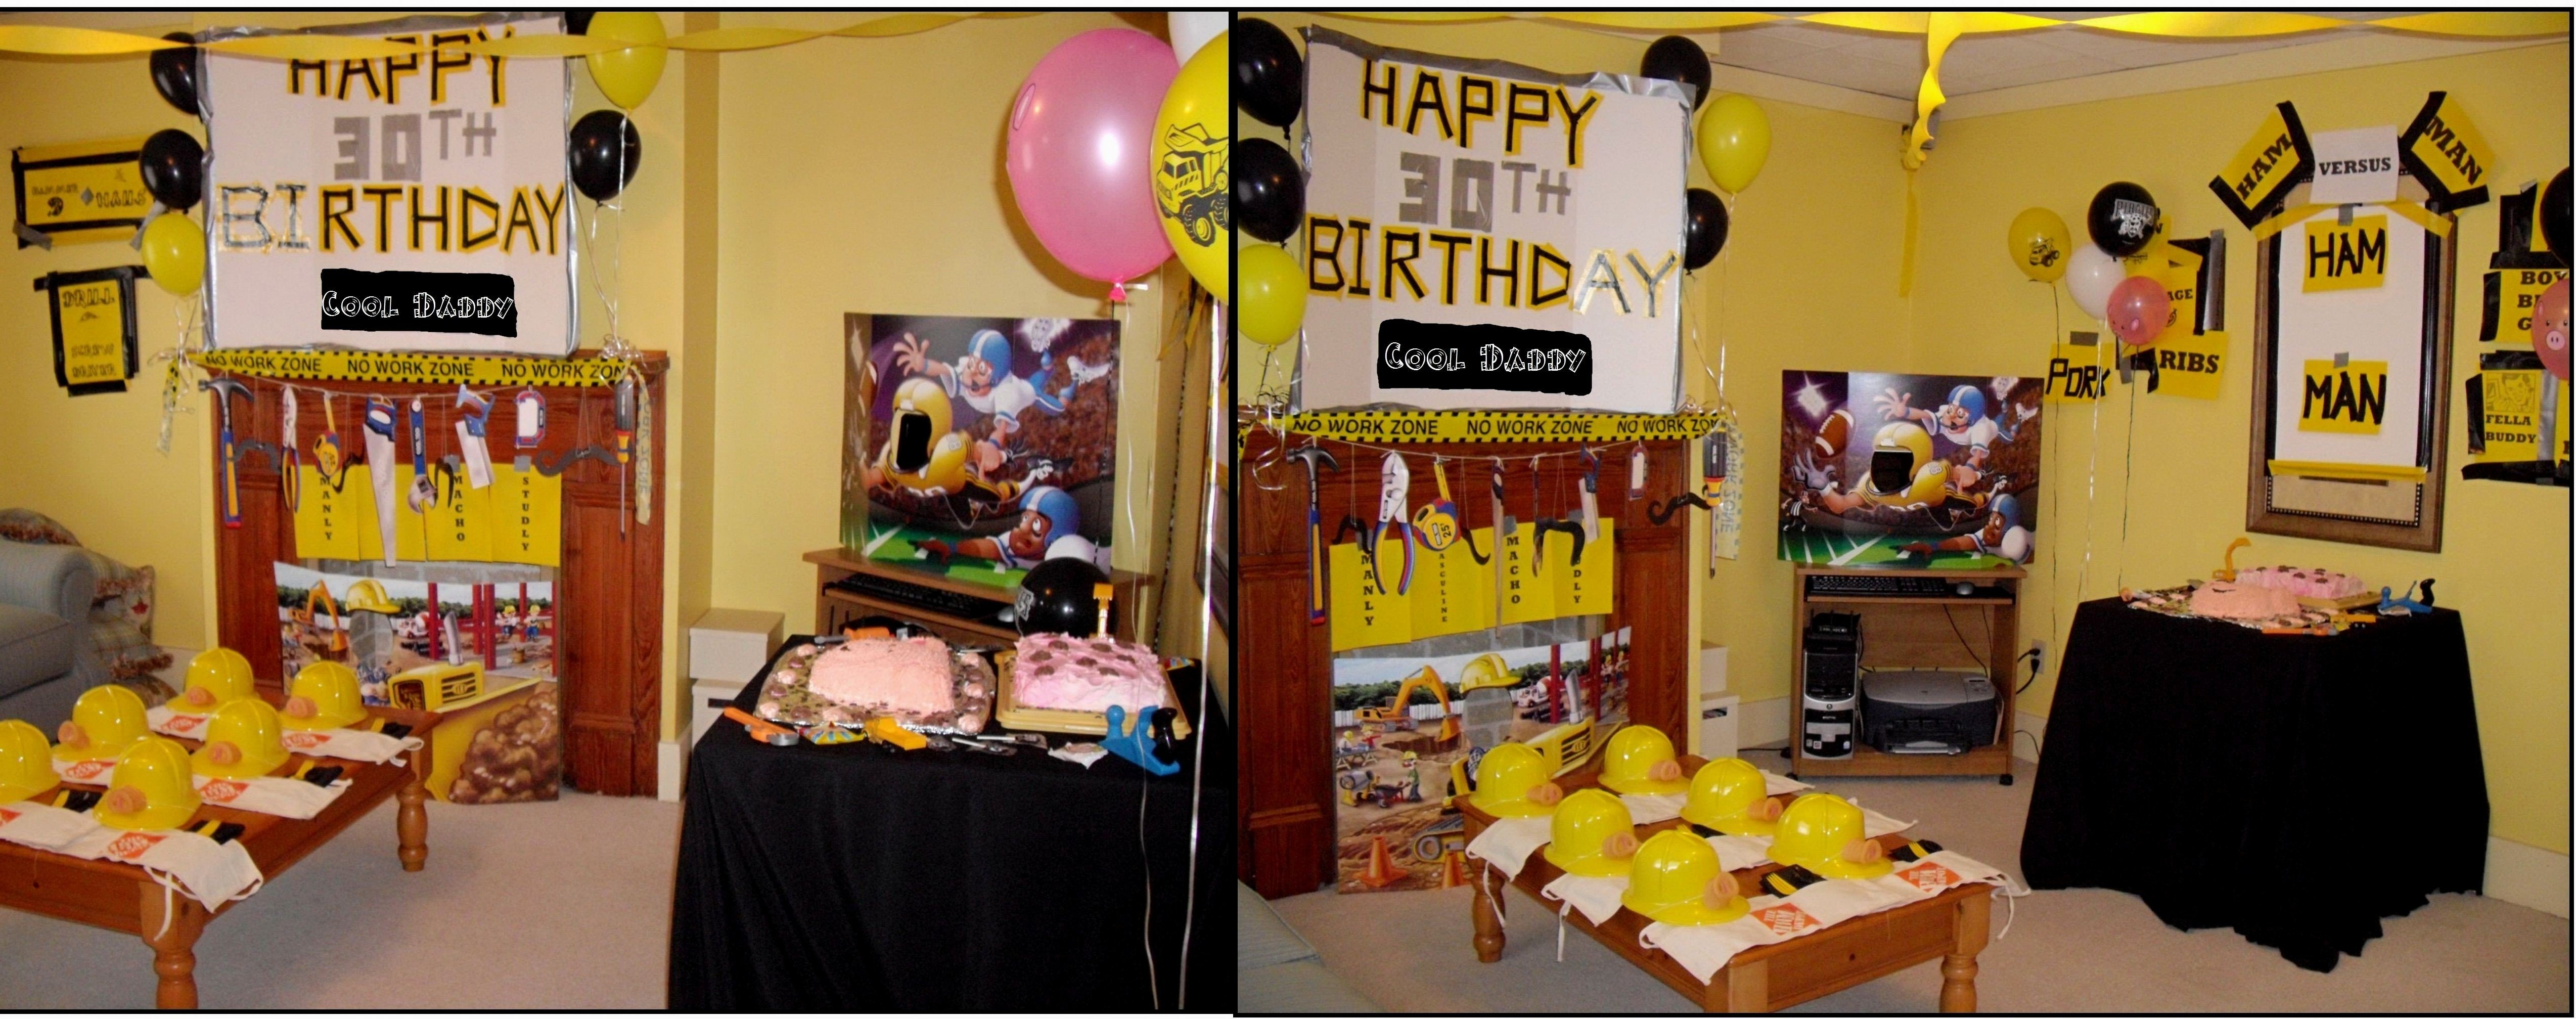 10 Famous Male 30Th Birthday Party Ideas 26 Stunning Decor Pertaining To 30th